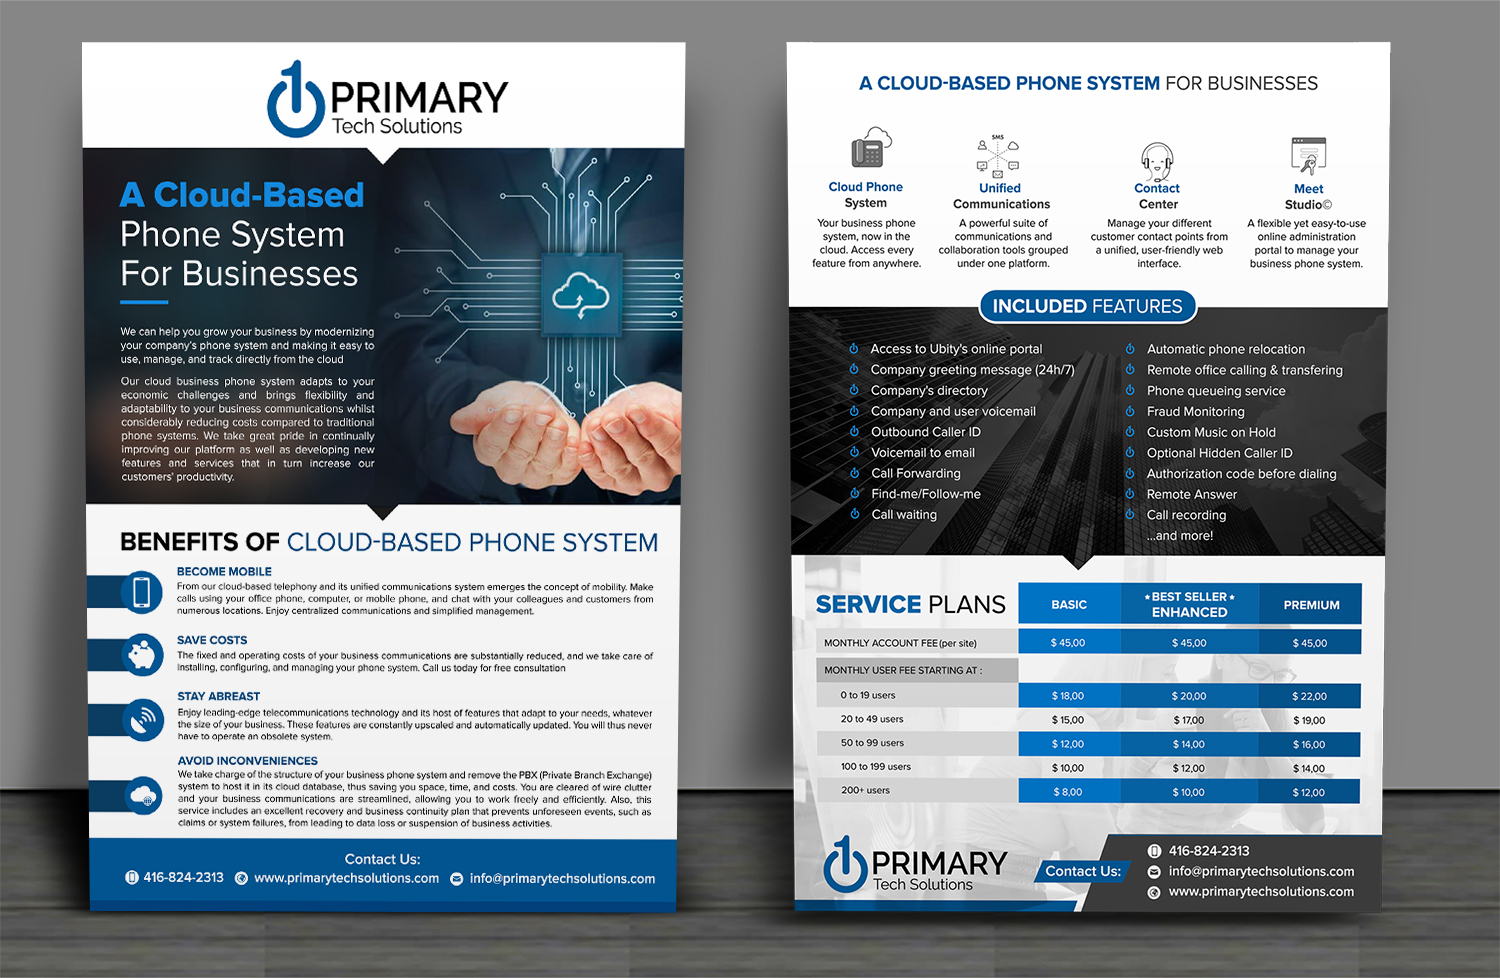 Elegant, Playful, Voip Flyer Design for PRIMARY Tech Solutions by SD WEBCREATION - Design #16795625